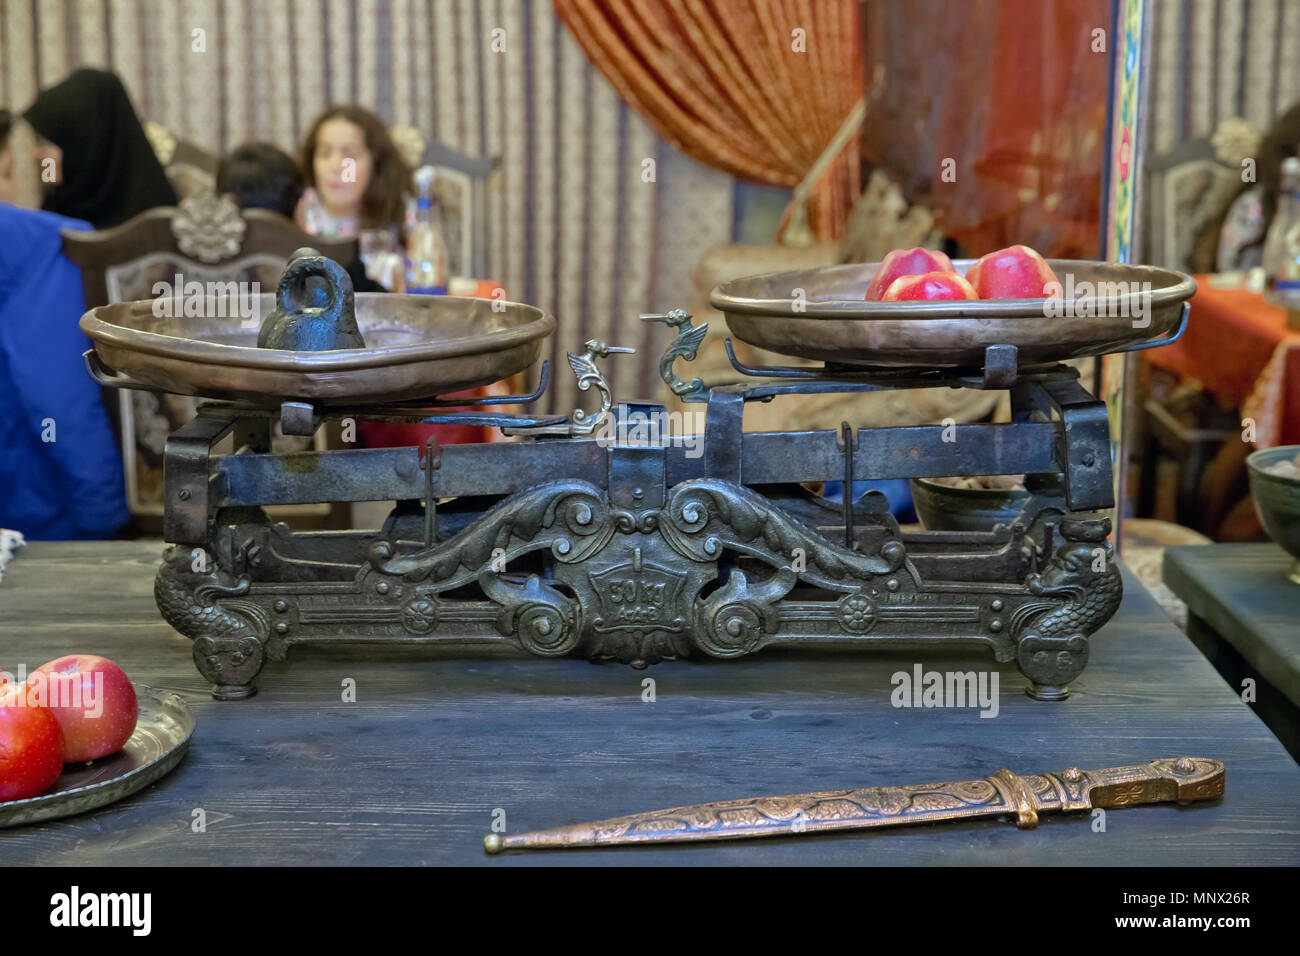 Old Antique weight measuring and kitchen goods weighing on the wooden table - Stock Image